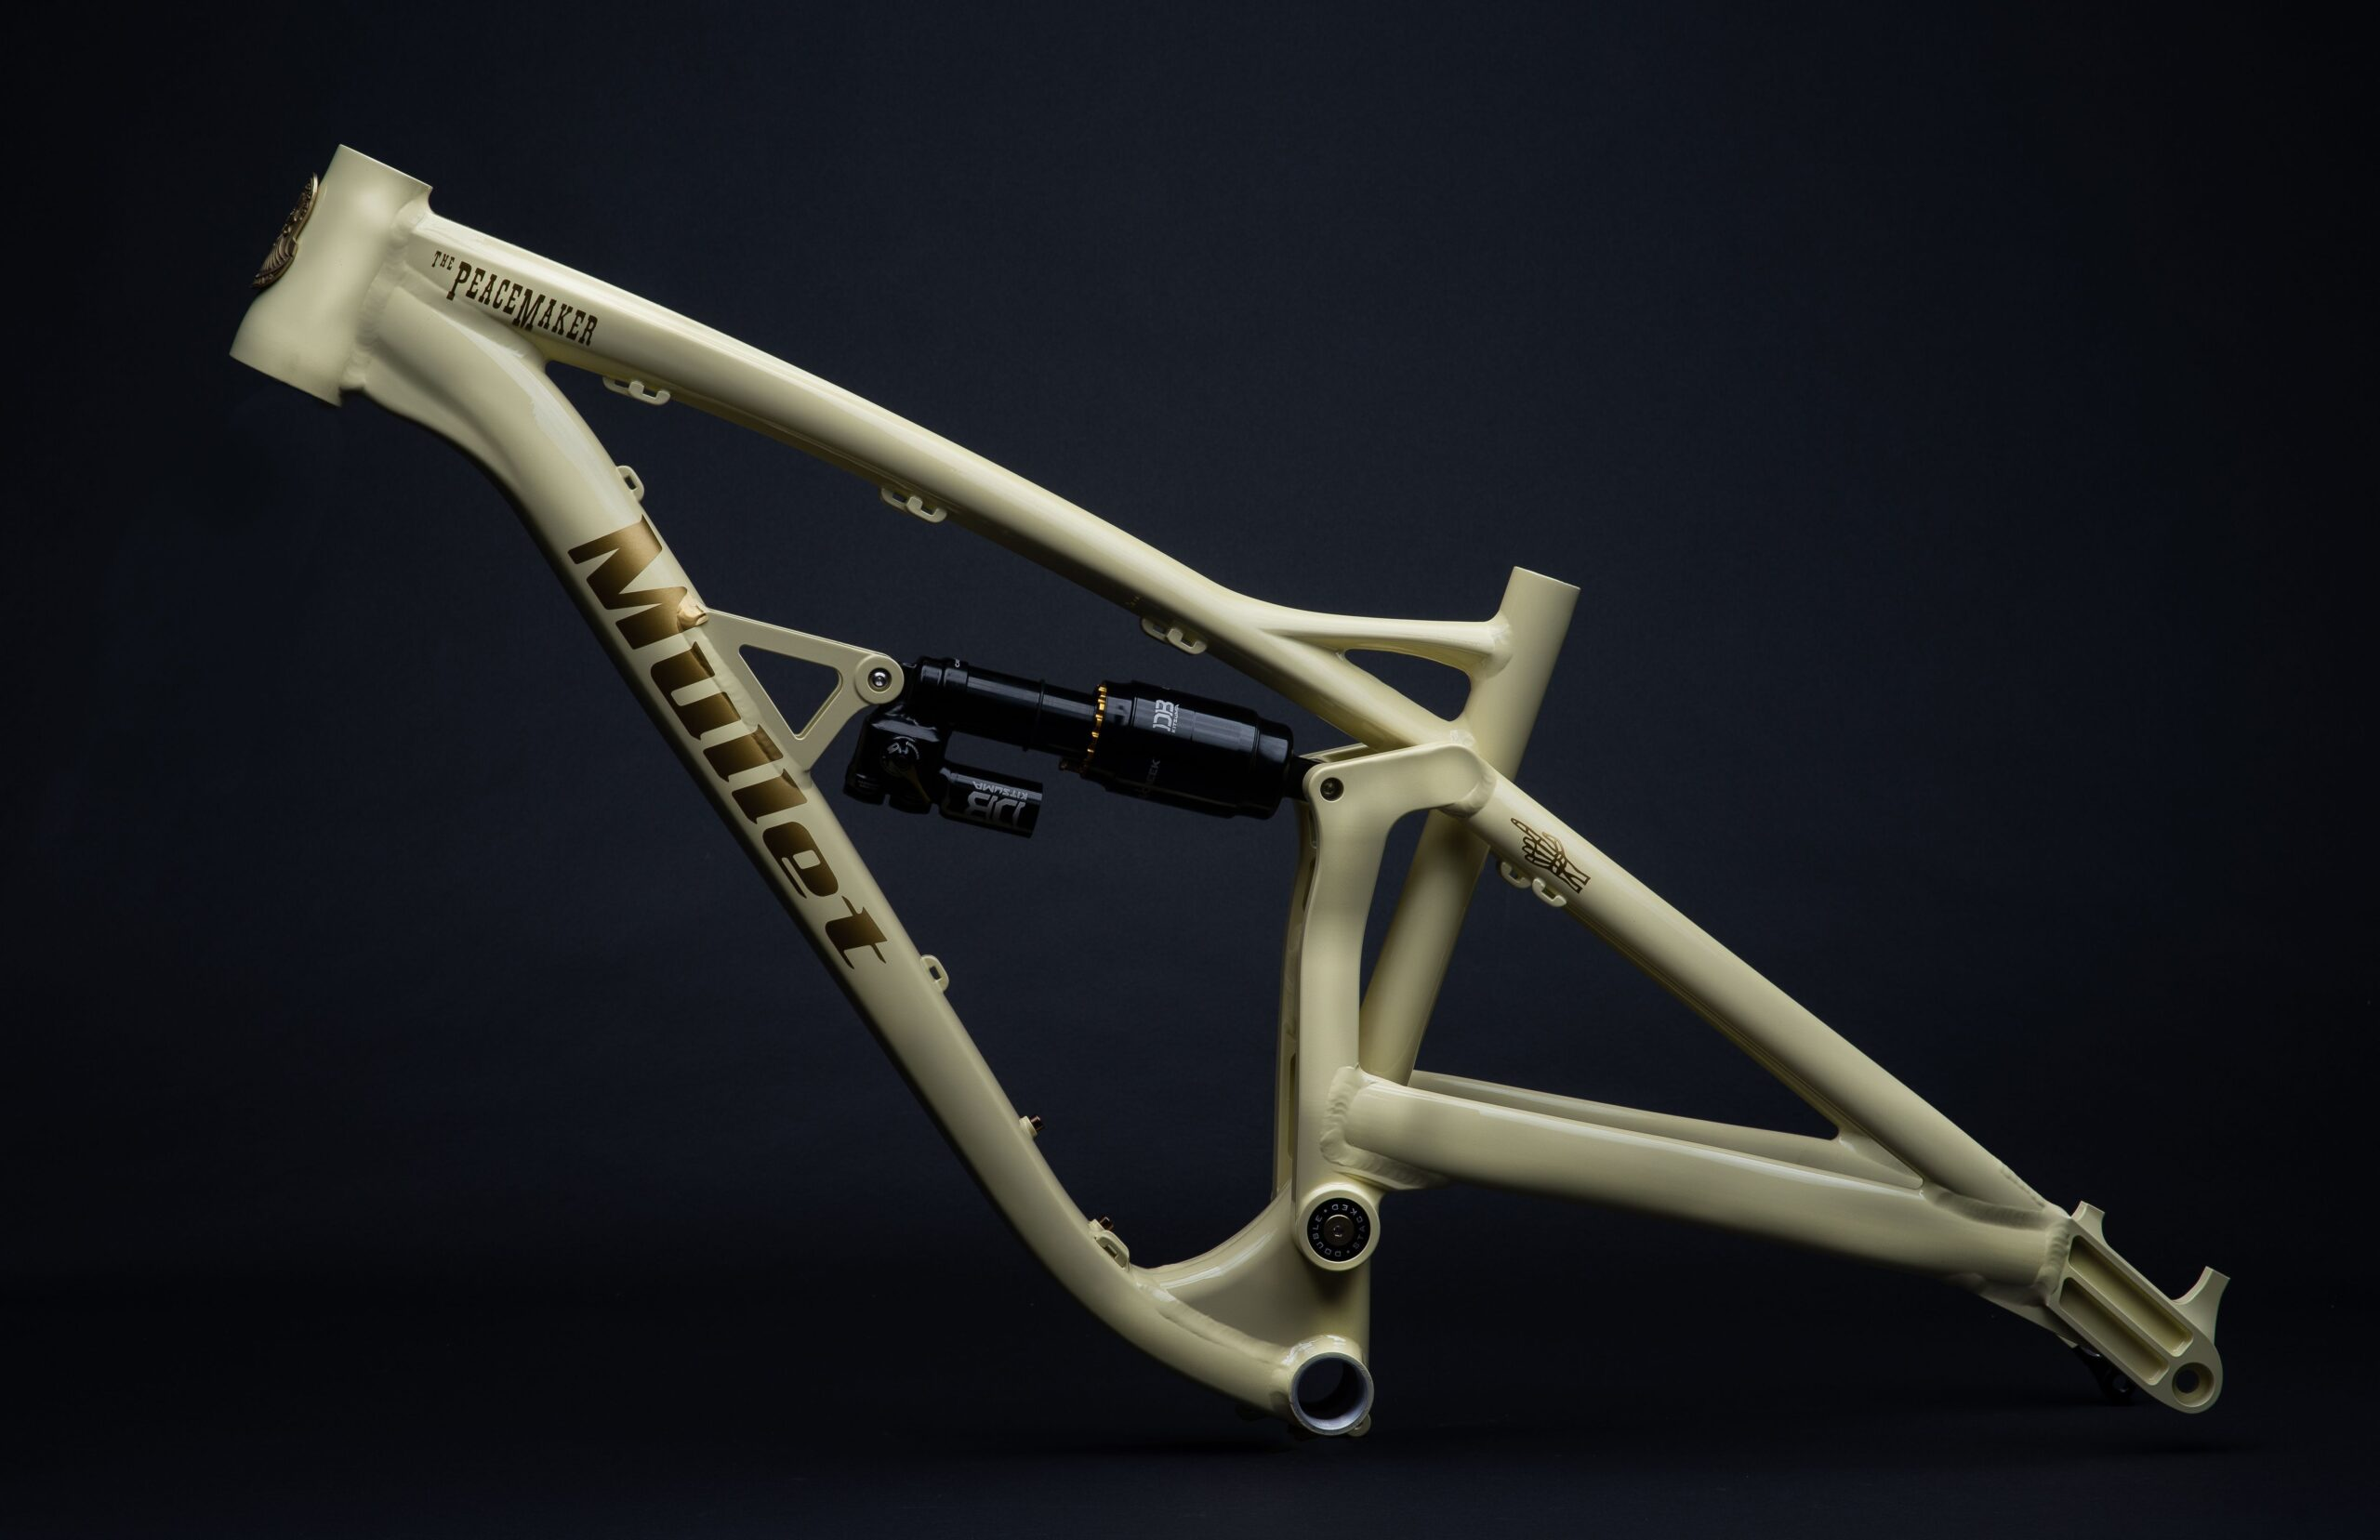 MULLET CYCLES LAUNCHES THE PEACEMAKER